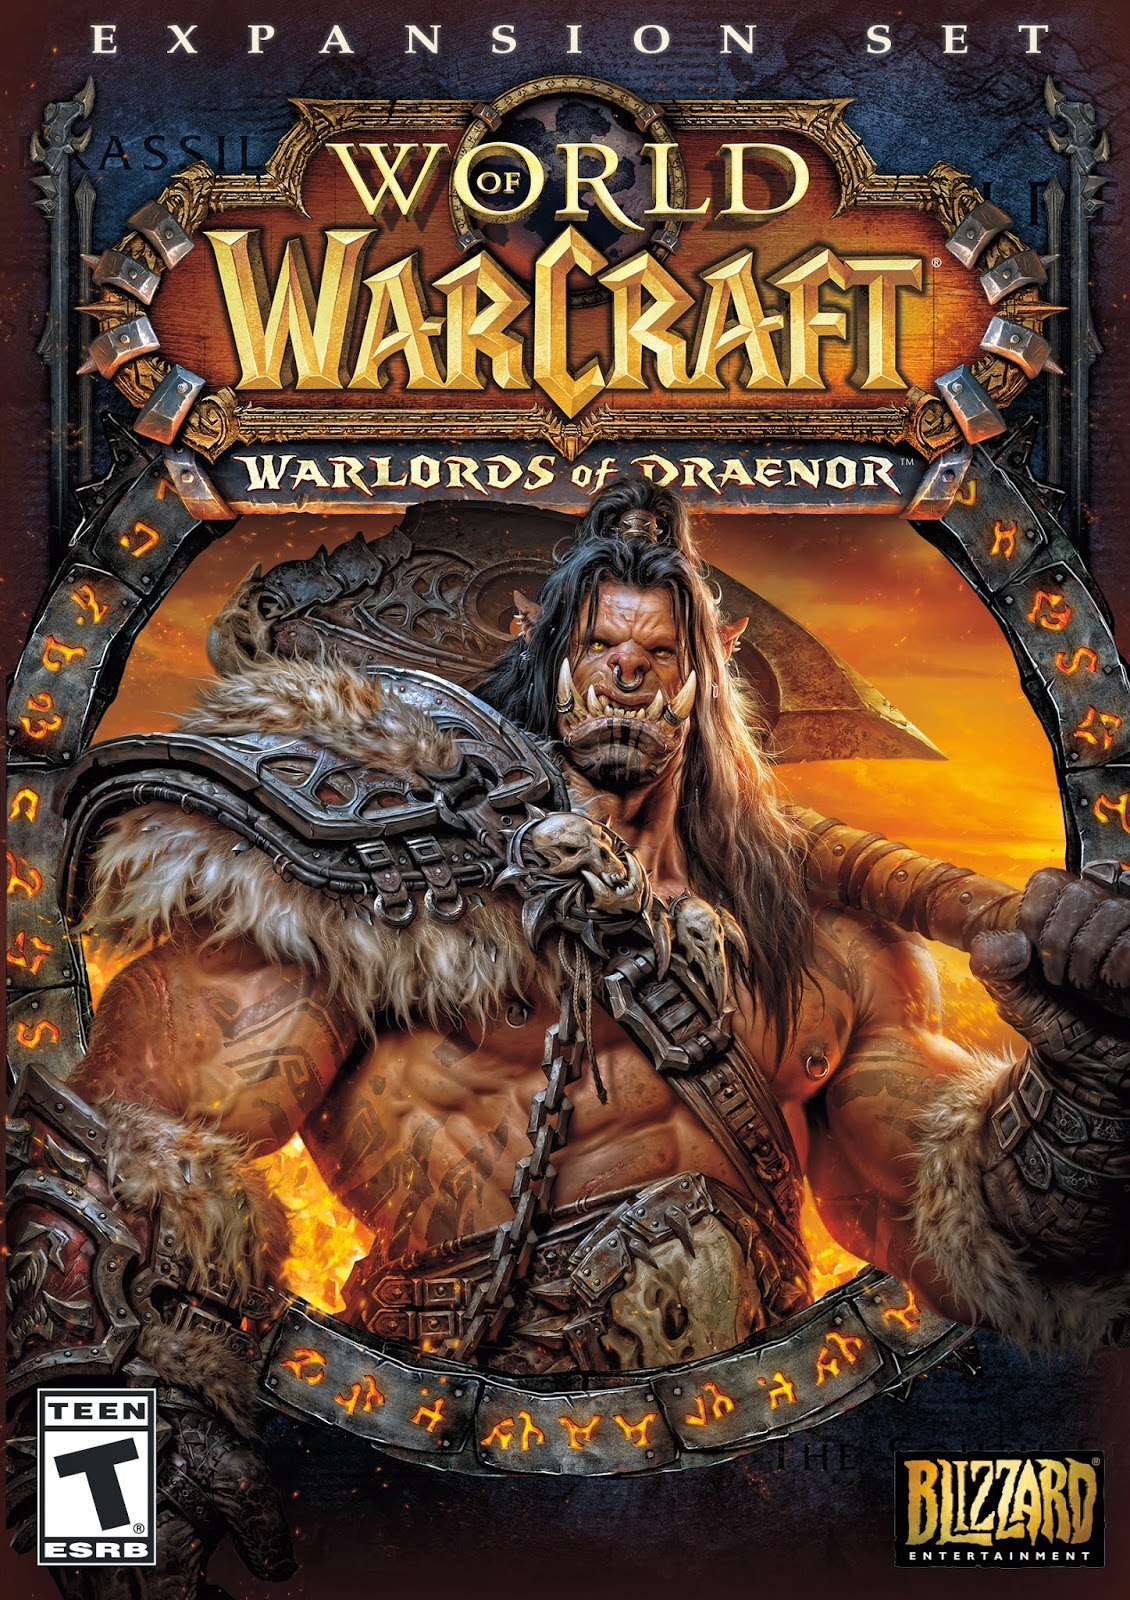 http://www.amazon.de/World-Warcraft-Warlords-Draenor-Add/dp/B00JEA86B2/ref=sr_1_1?s=videogames&ie=UTF8&qid=1420227700&sr=1-1&keywords=World+of+Warcraft%3A+Warlords+of+Draenor